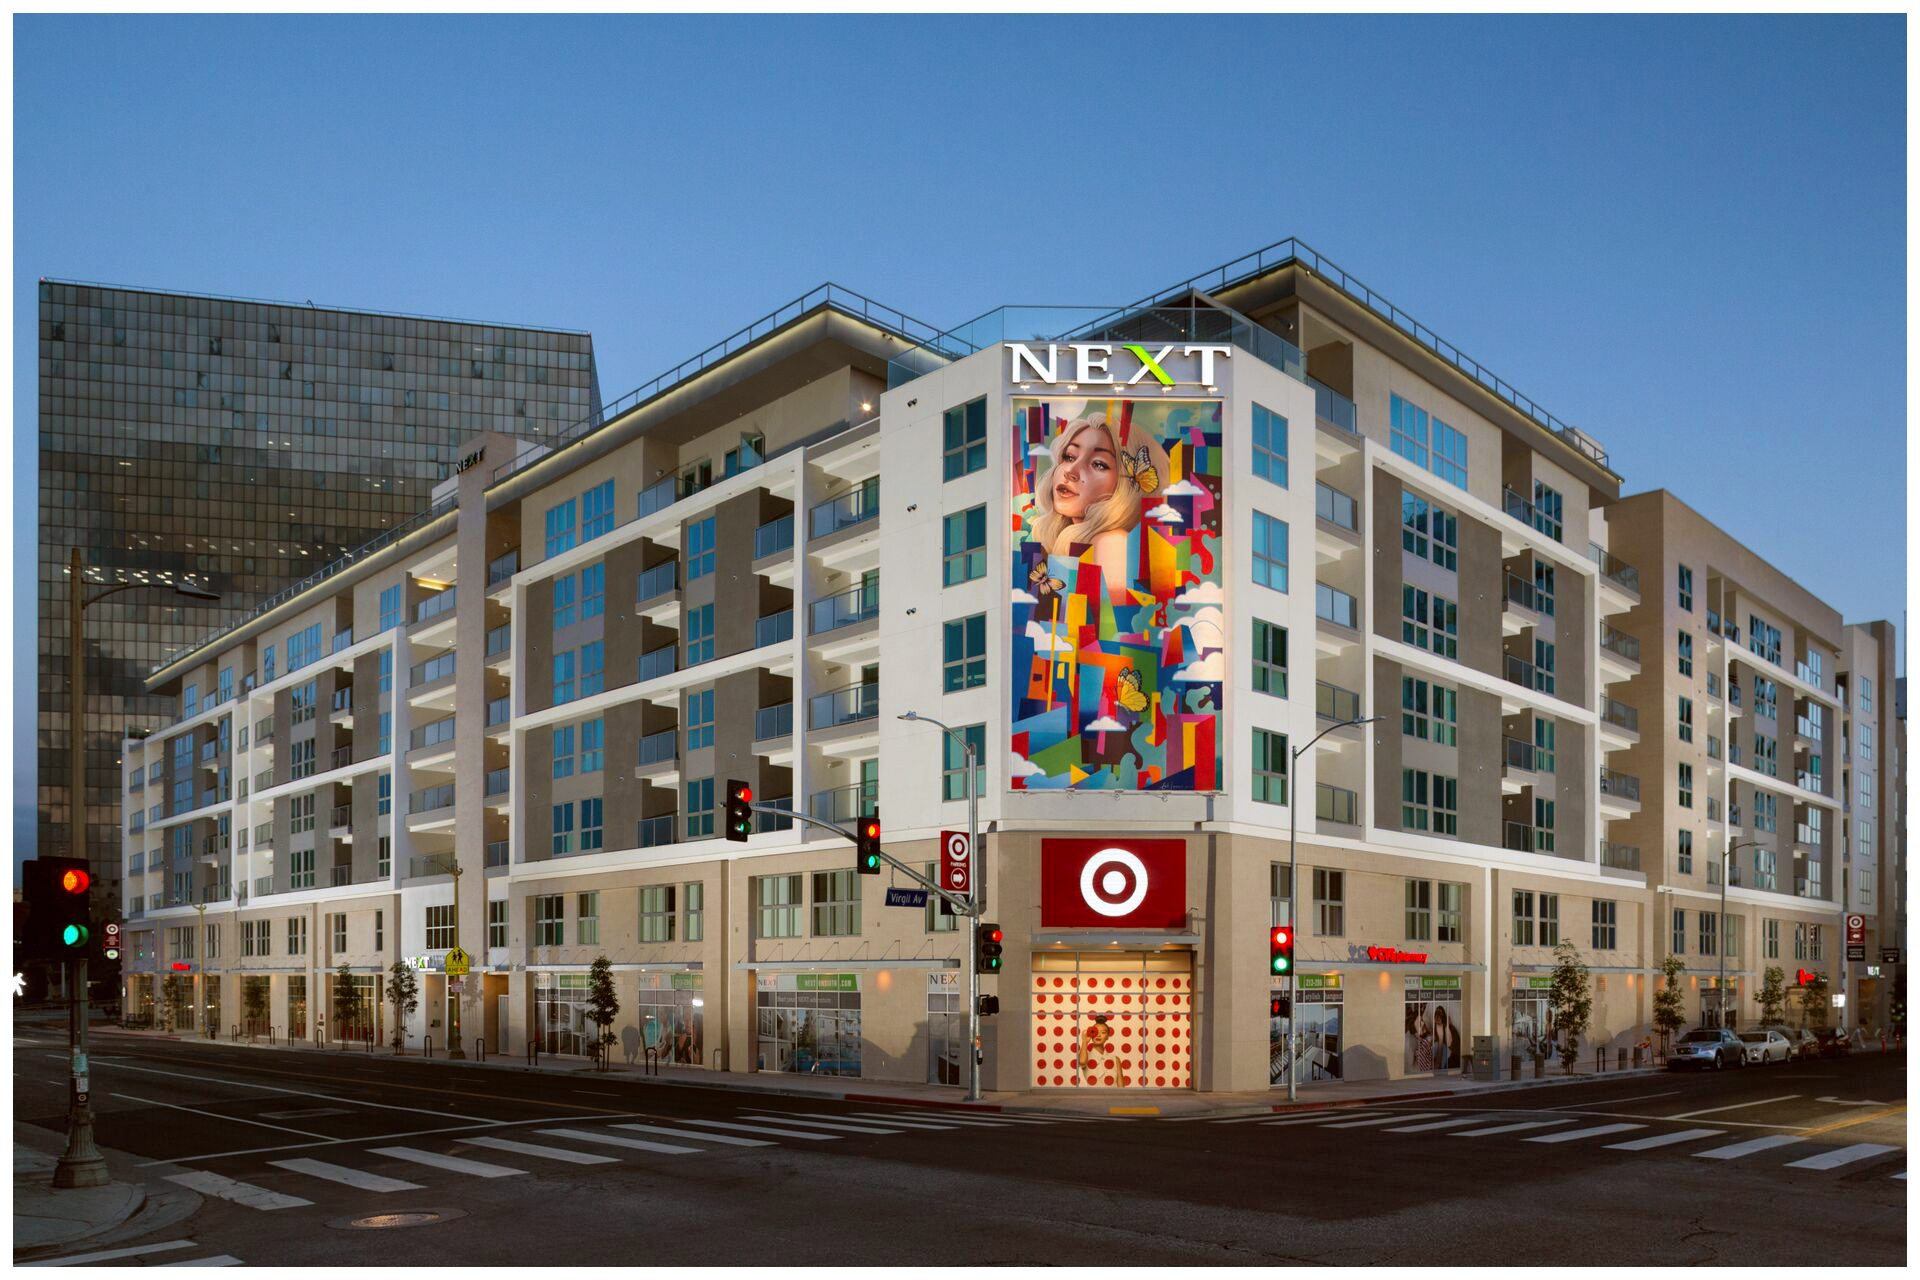 NEXT ON SIXTH - KOREA TOWN399 Upscale Residential units and 42,600 SF of retail space. Media Systems provided:Public Safety DAS (ERRCS)Commercial Cellular DAS Common Area WiFiCommon Area AV3×3 Video Wall DisplayApartment Audio System in all Penthouse units.